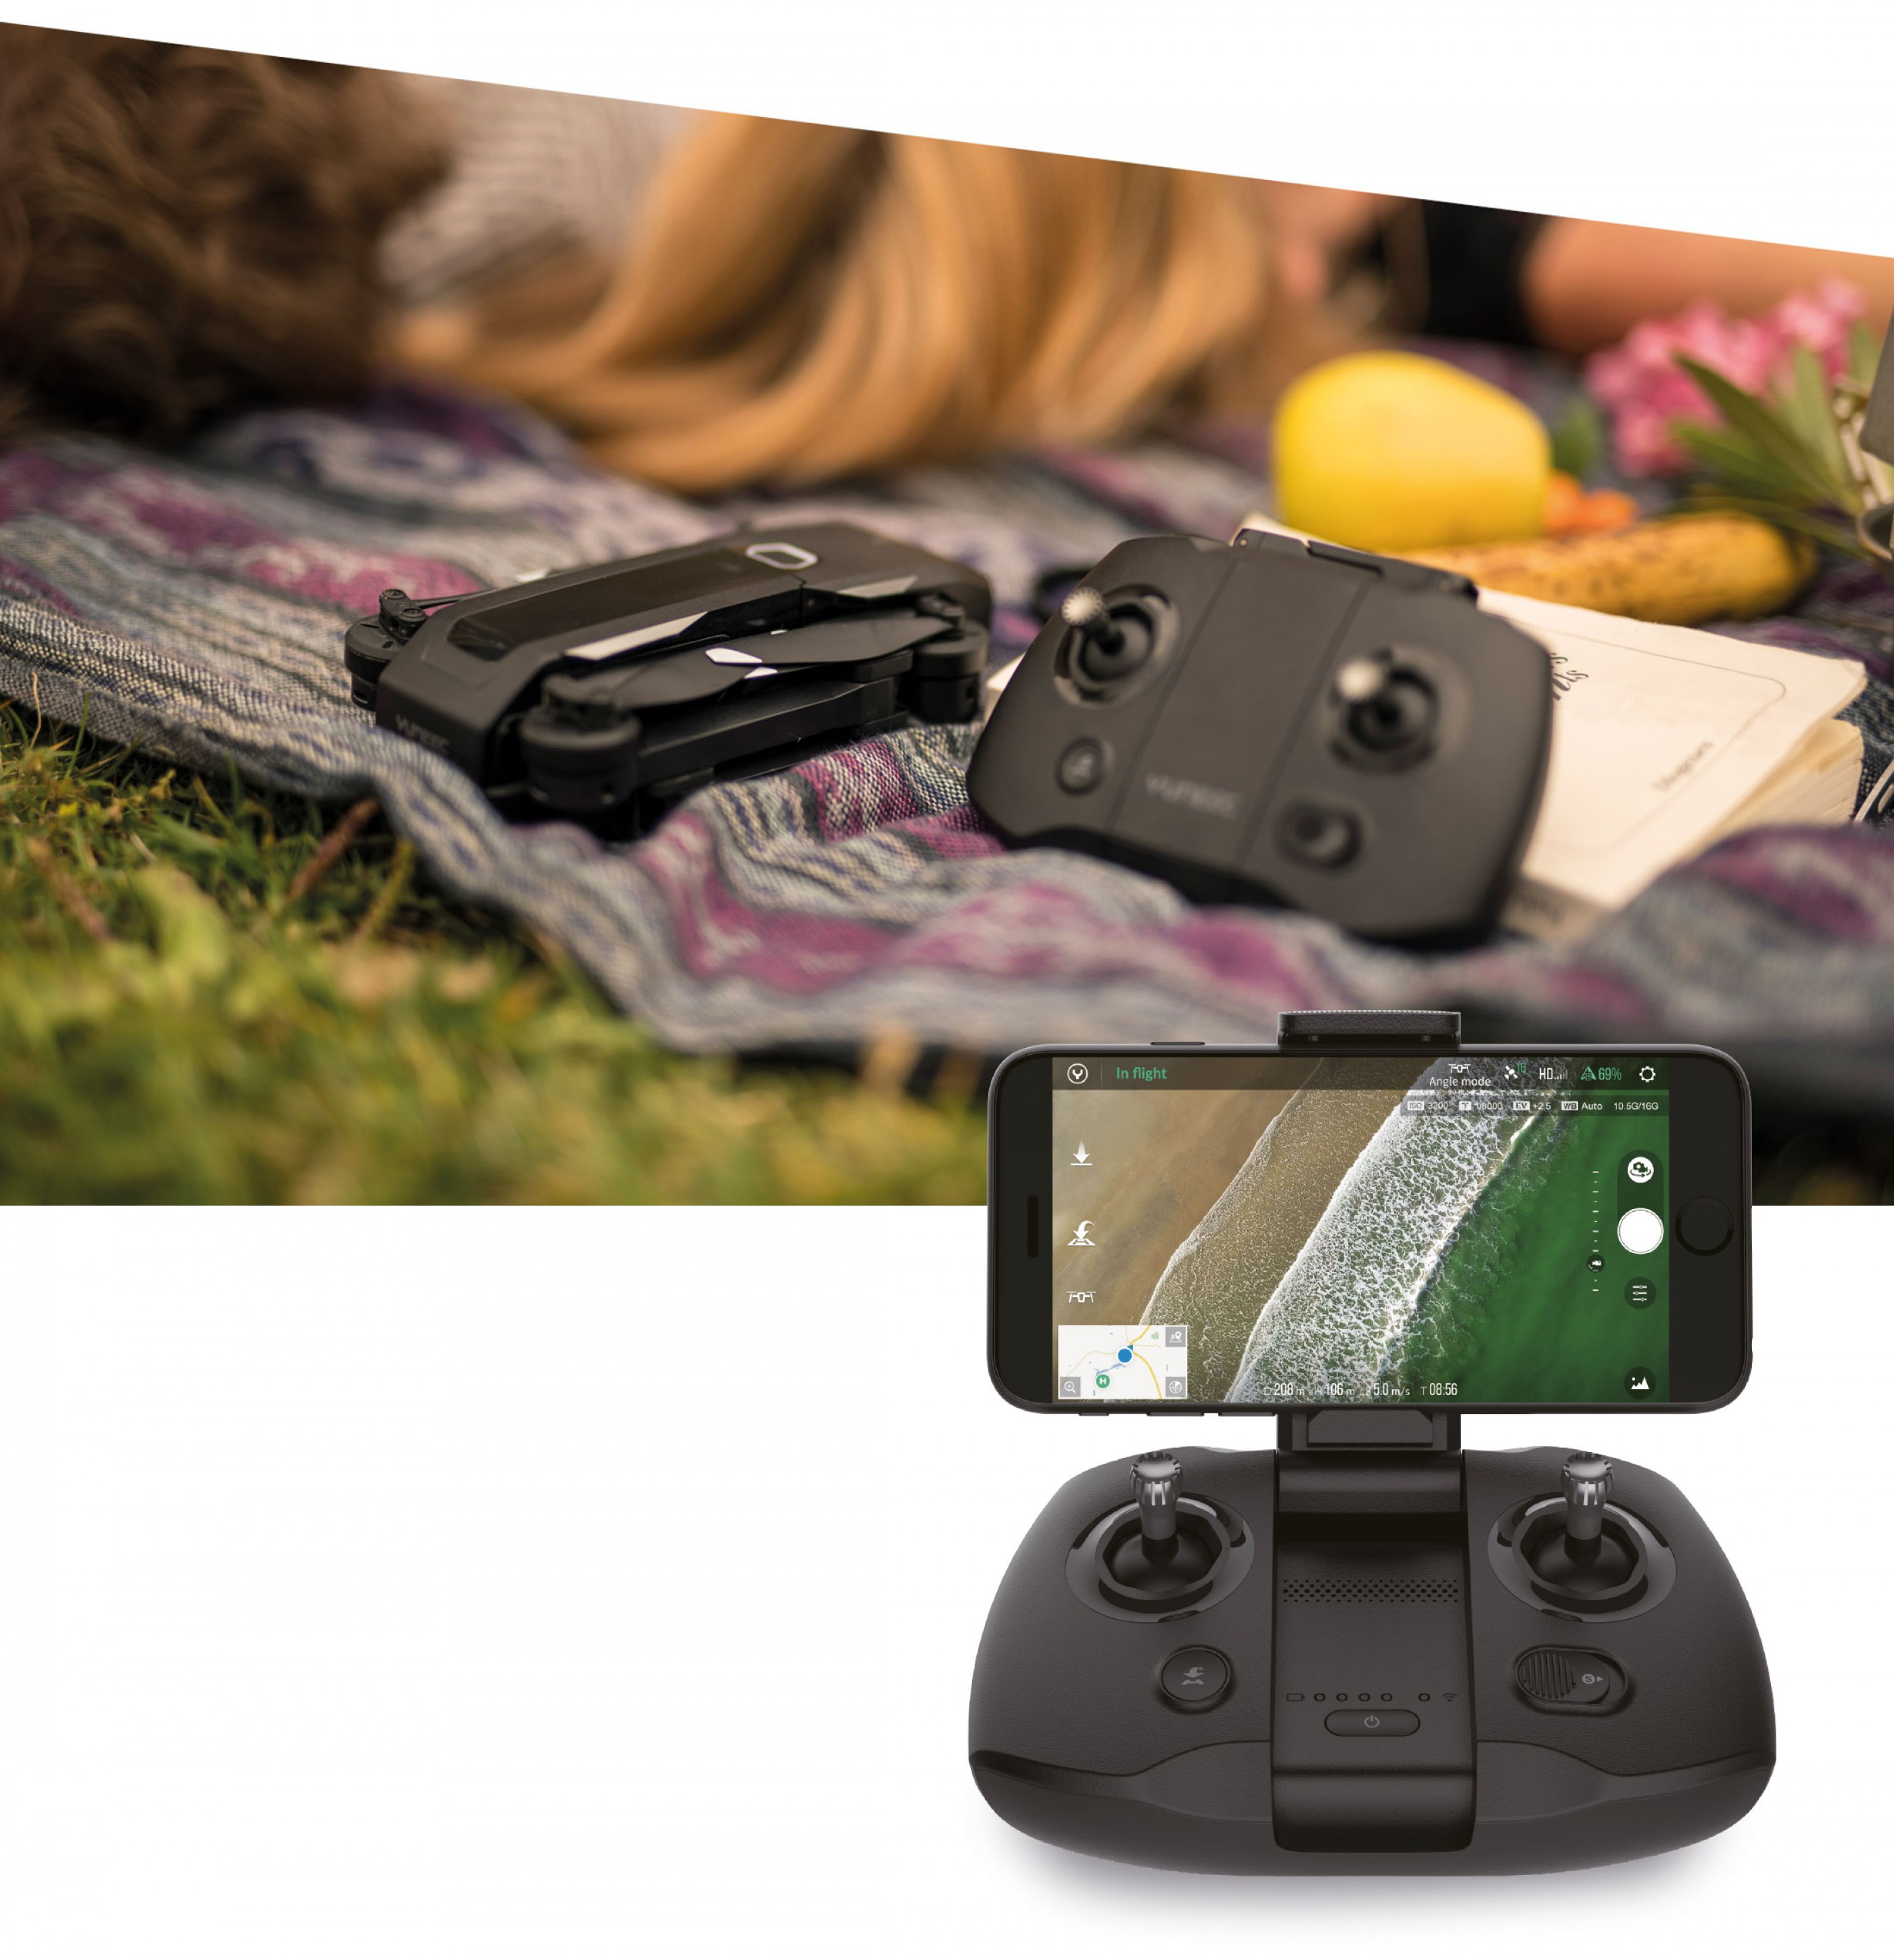 Mantis-Q-foldable-drone-with-controller-included-64d89412